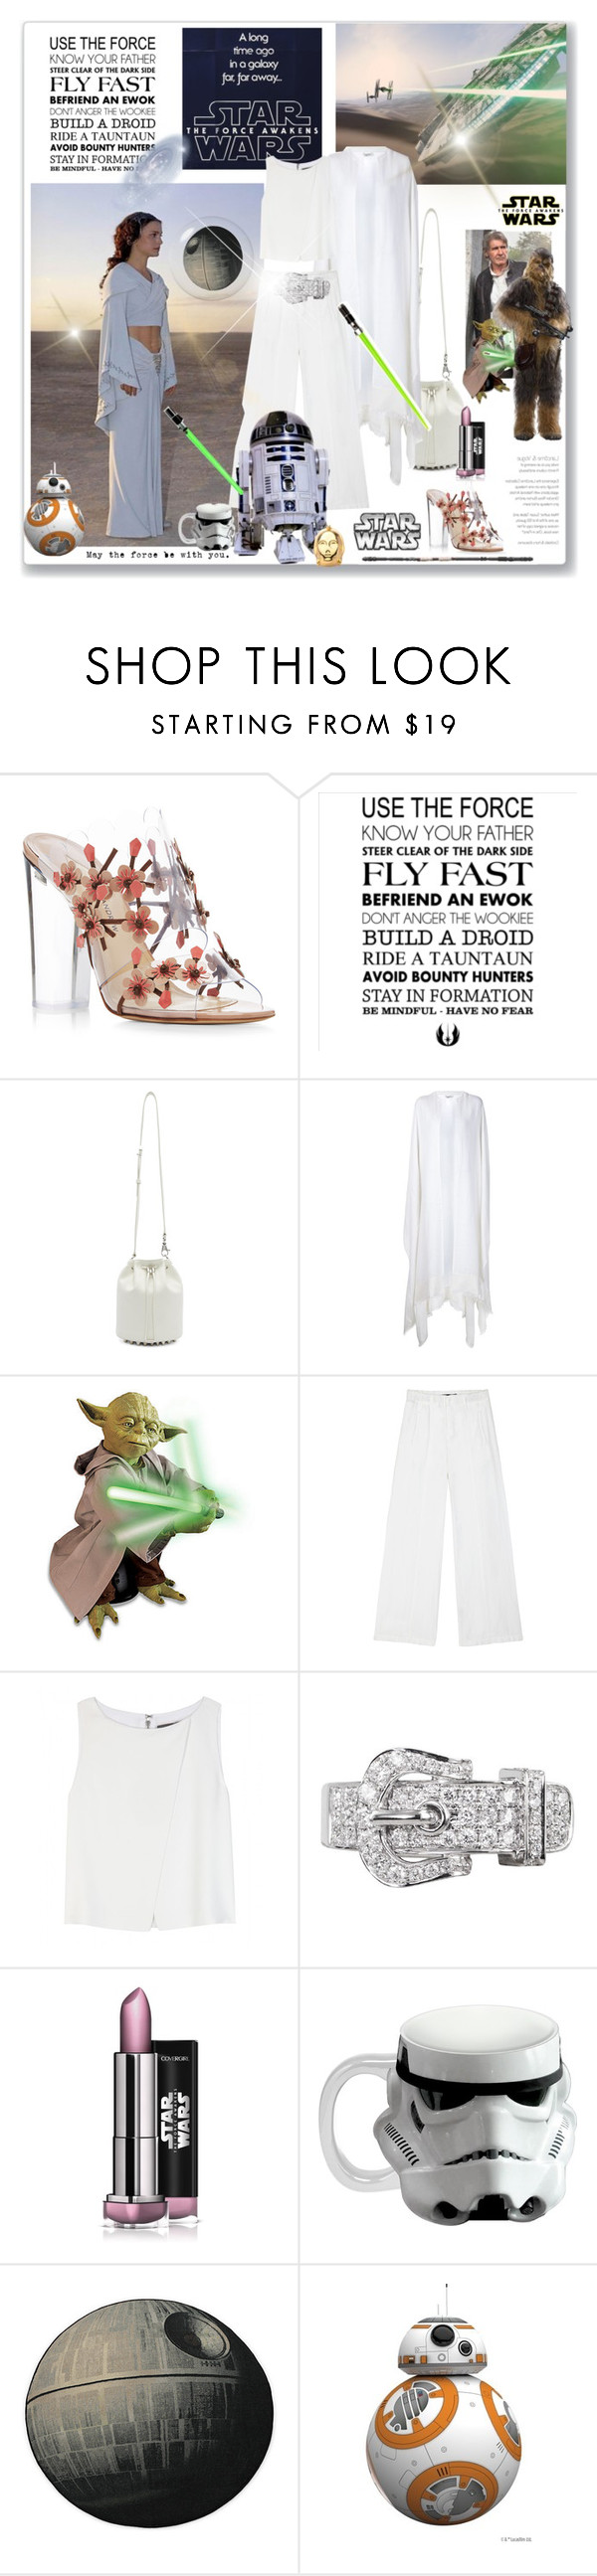 """May The Force Be With You"" by rever-de-paris ❤ liked on Polyvore featuring Episode, Paul Andrew, Alexander Wang, Ryan Roche, Disney, Alice + Olivia, Plukka, R2 and Vandor"